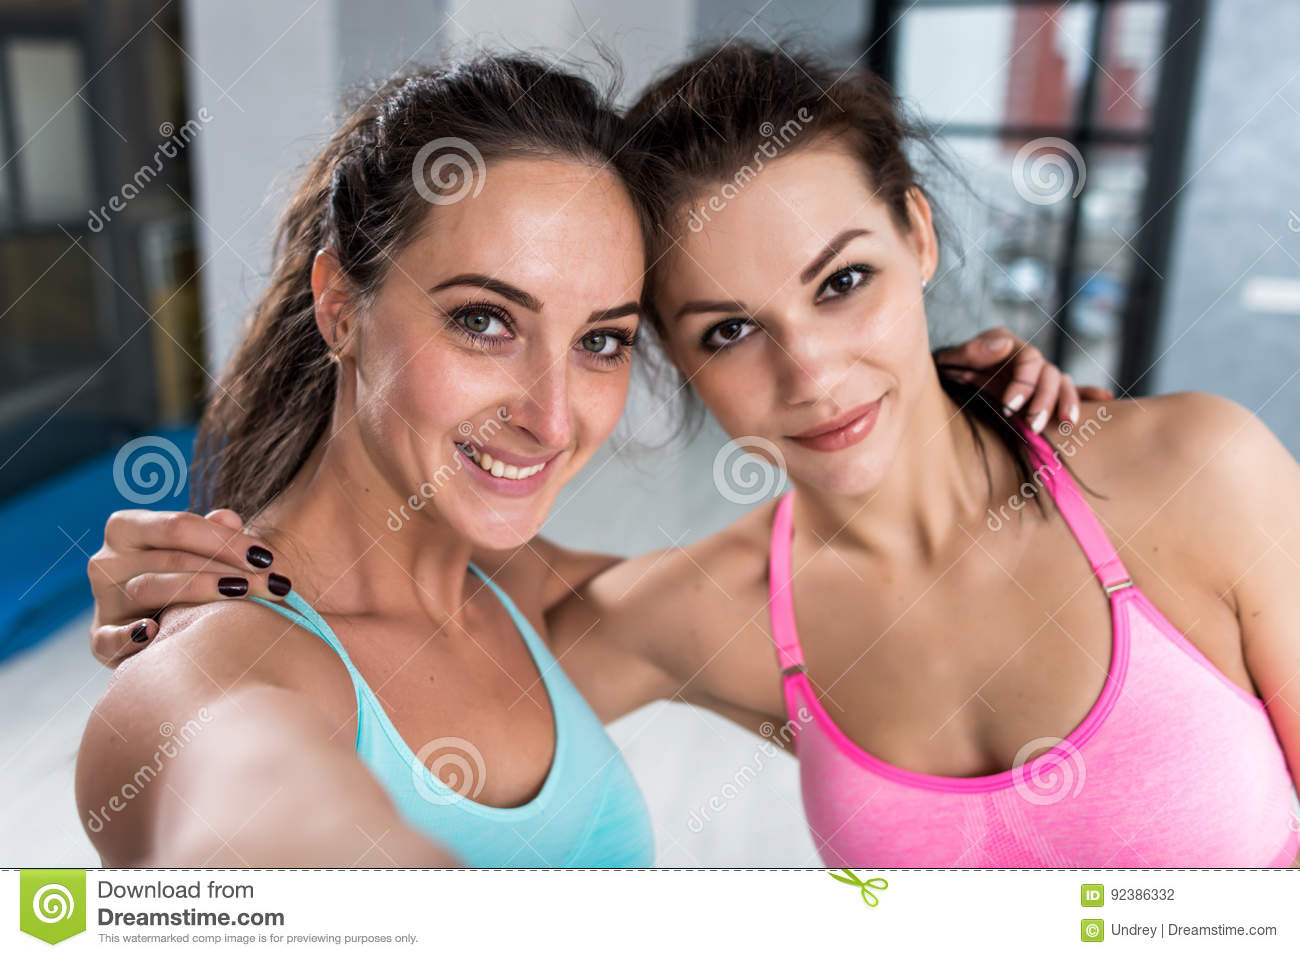 Two girls taking selfie wearing sports bra indoors. Close-up shot of female athletes smiling at camera hugging each